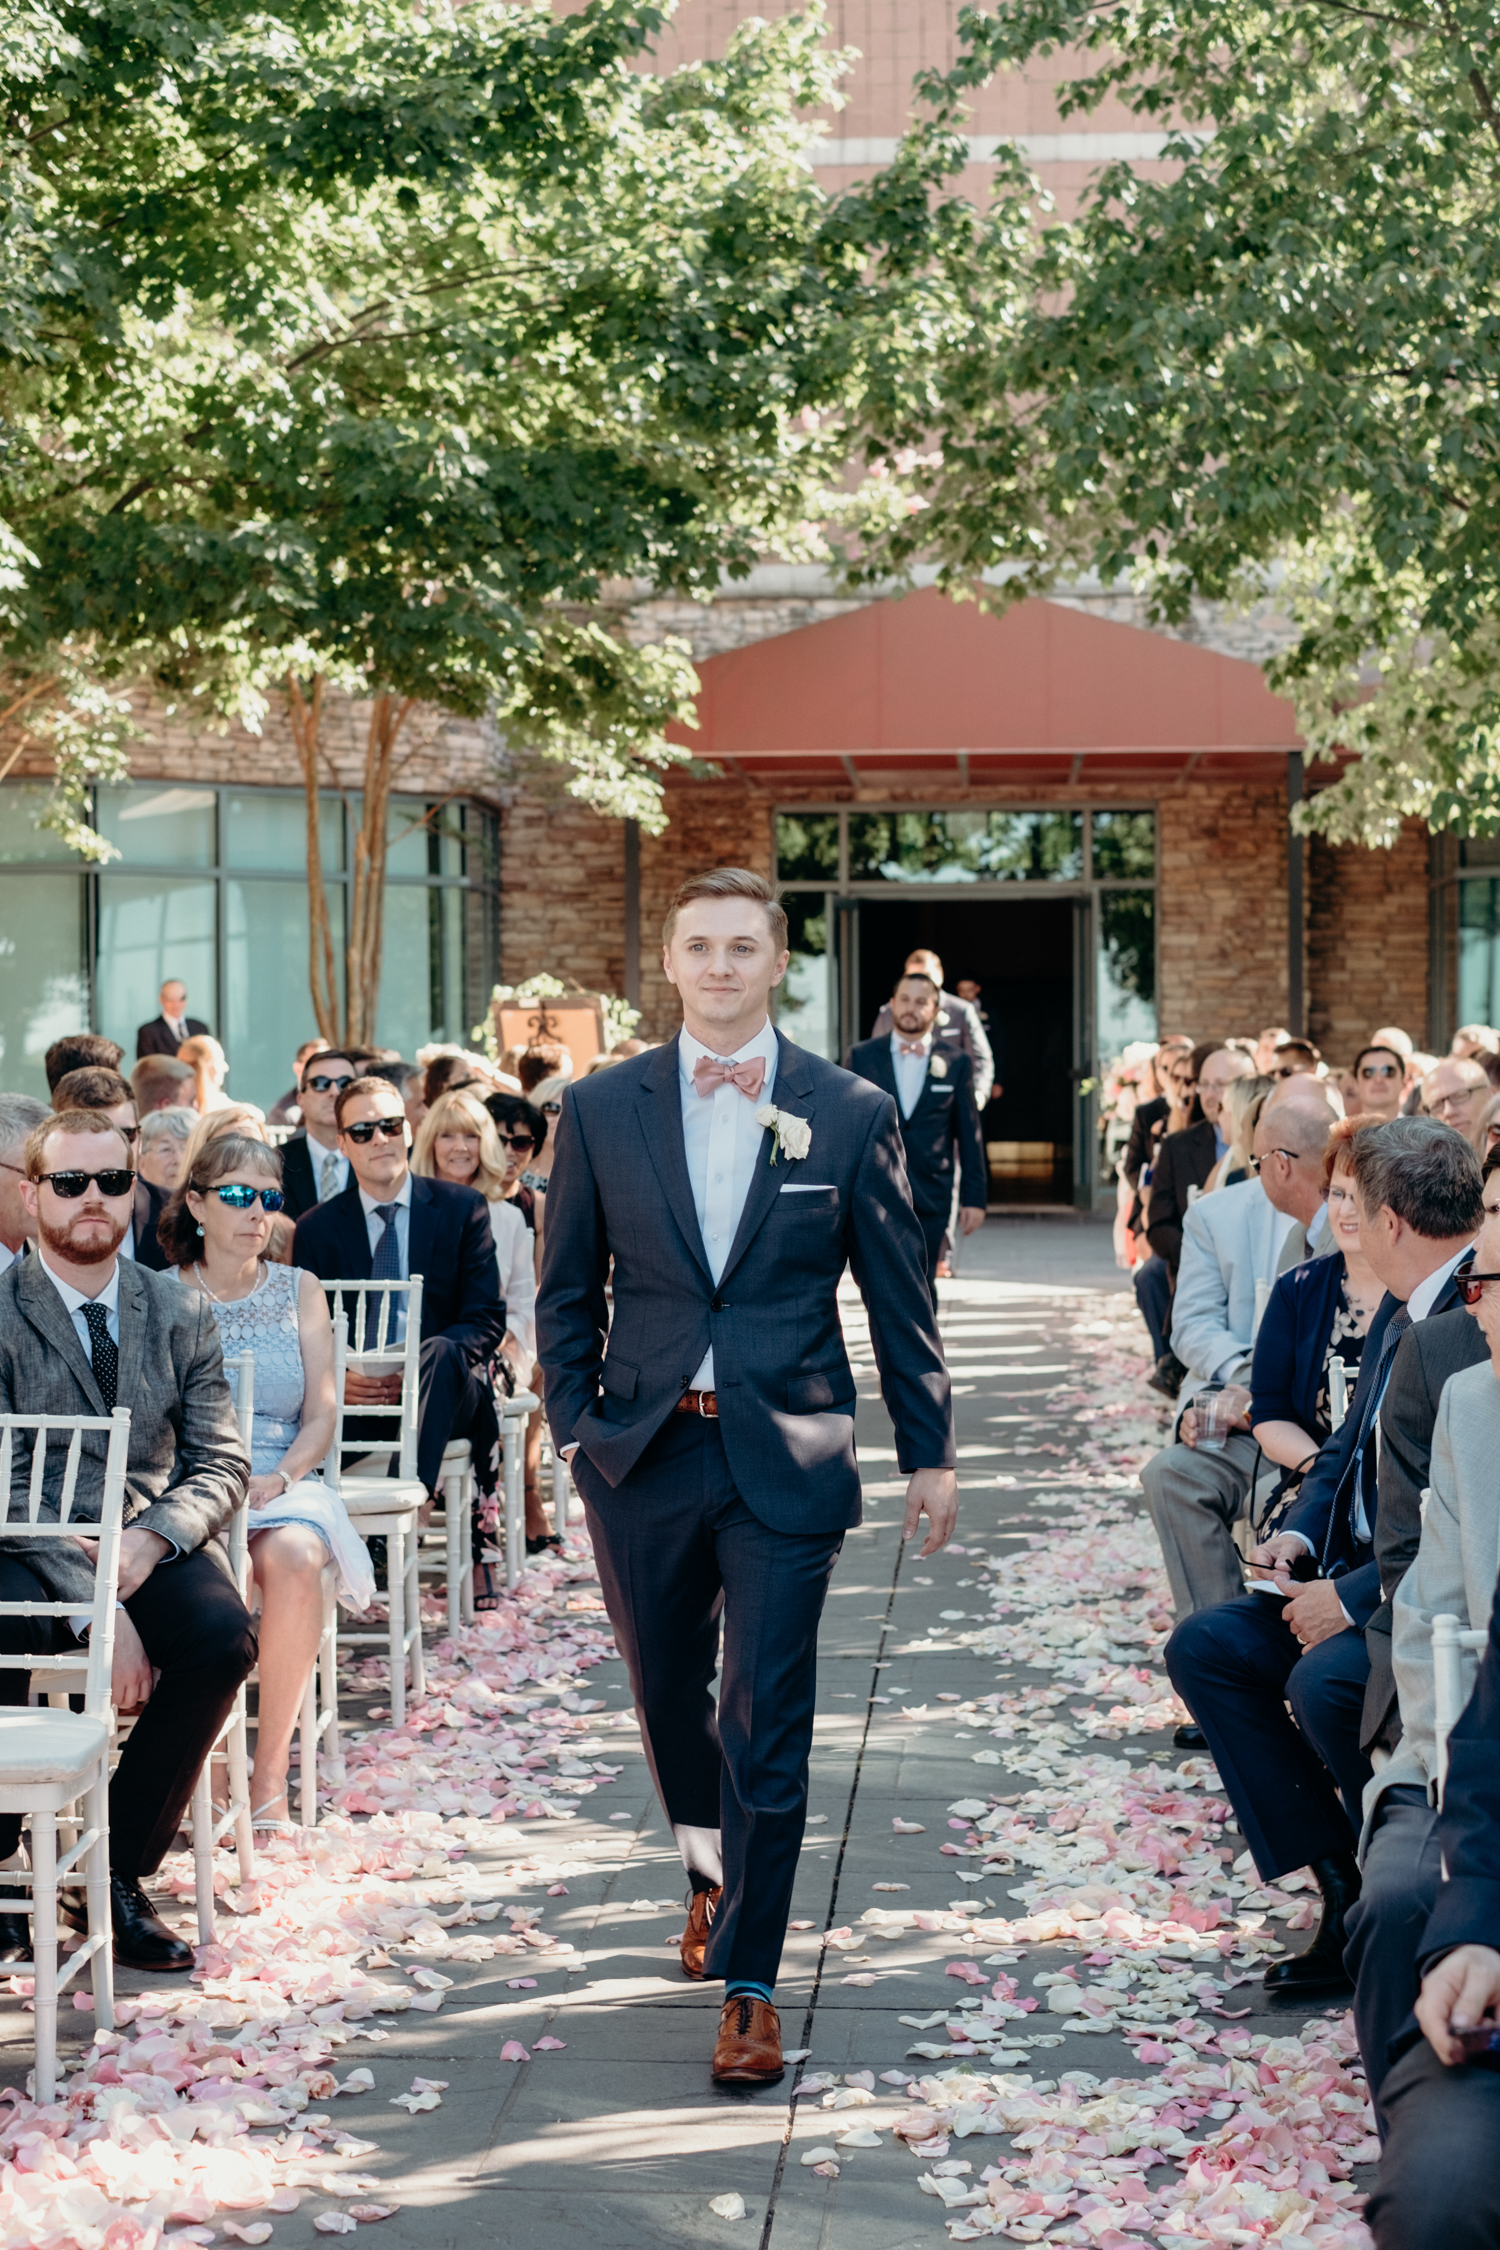 A groom walks up an aisle strewn with petals for this wedding ceremony at Lansdowne Resort.